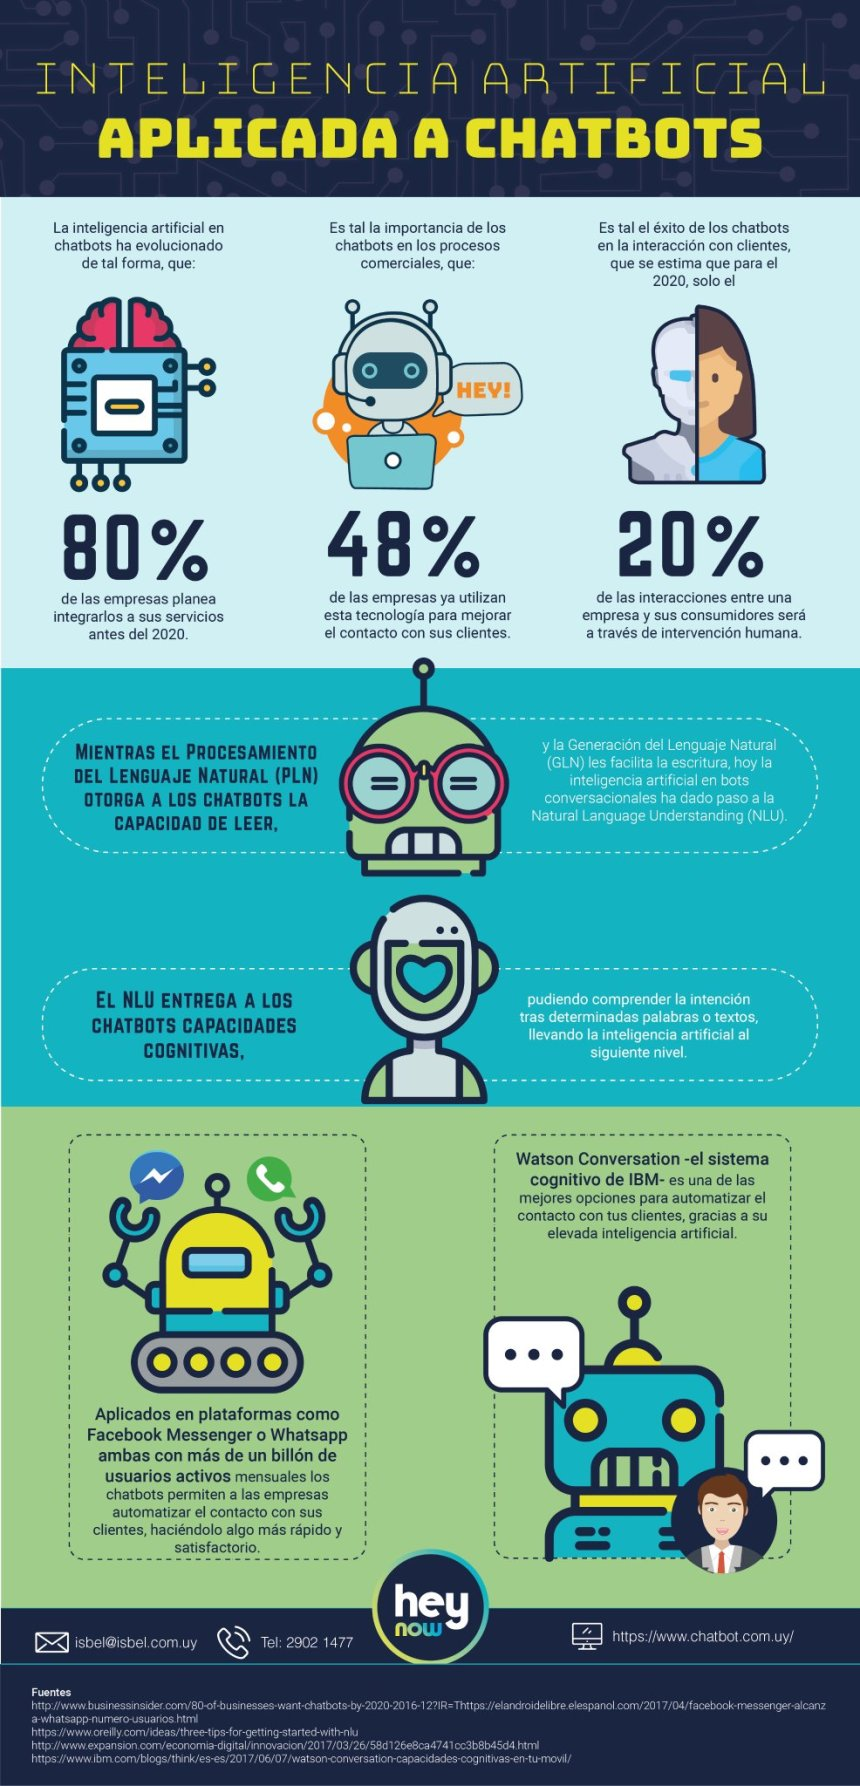 Inteligencia Artificial aplicado a chatbots #infografia #infographic #ia #marketing